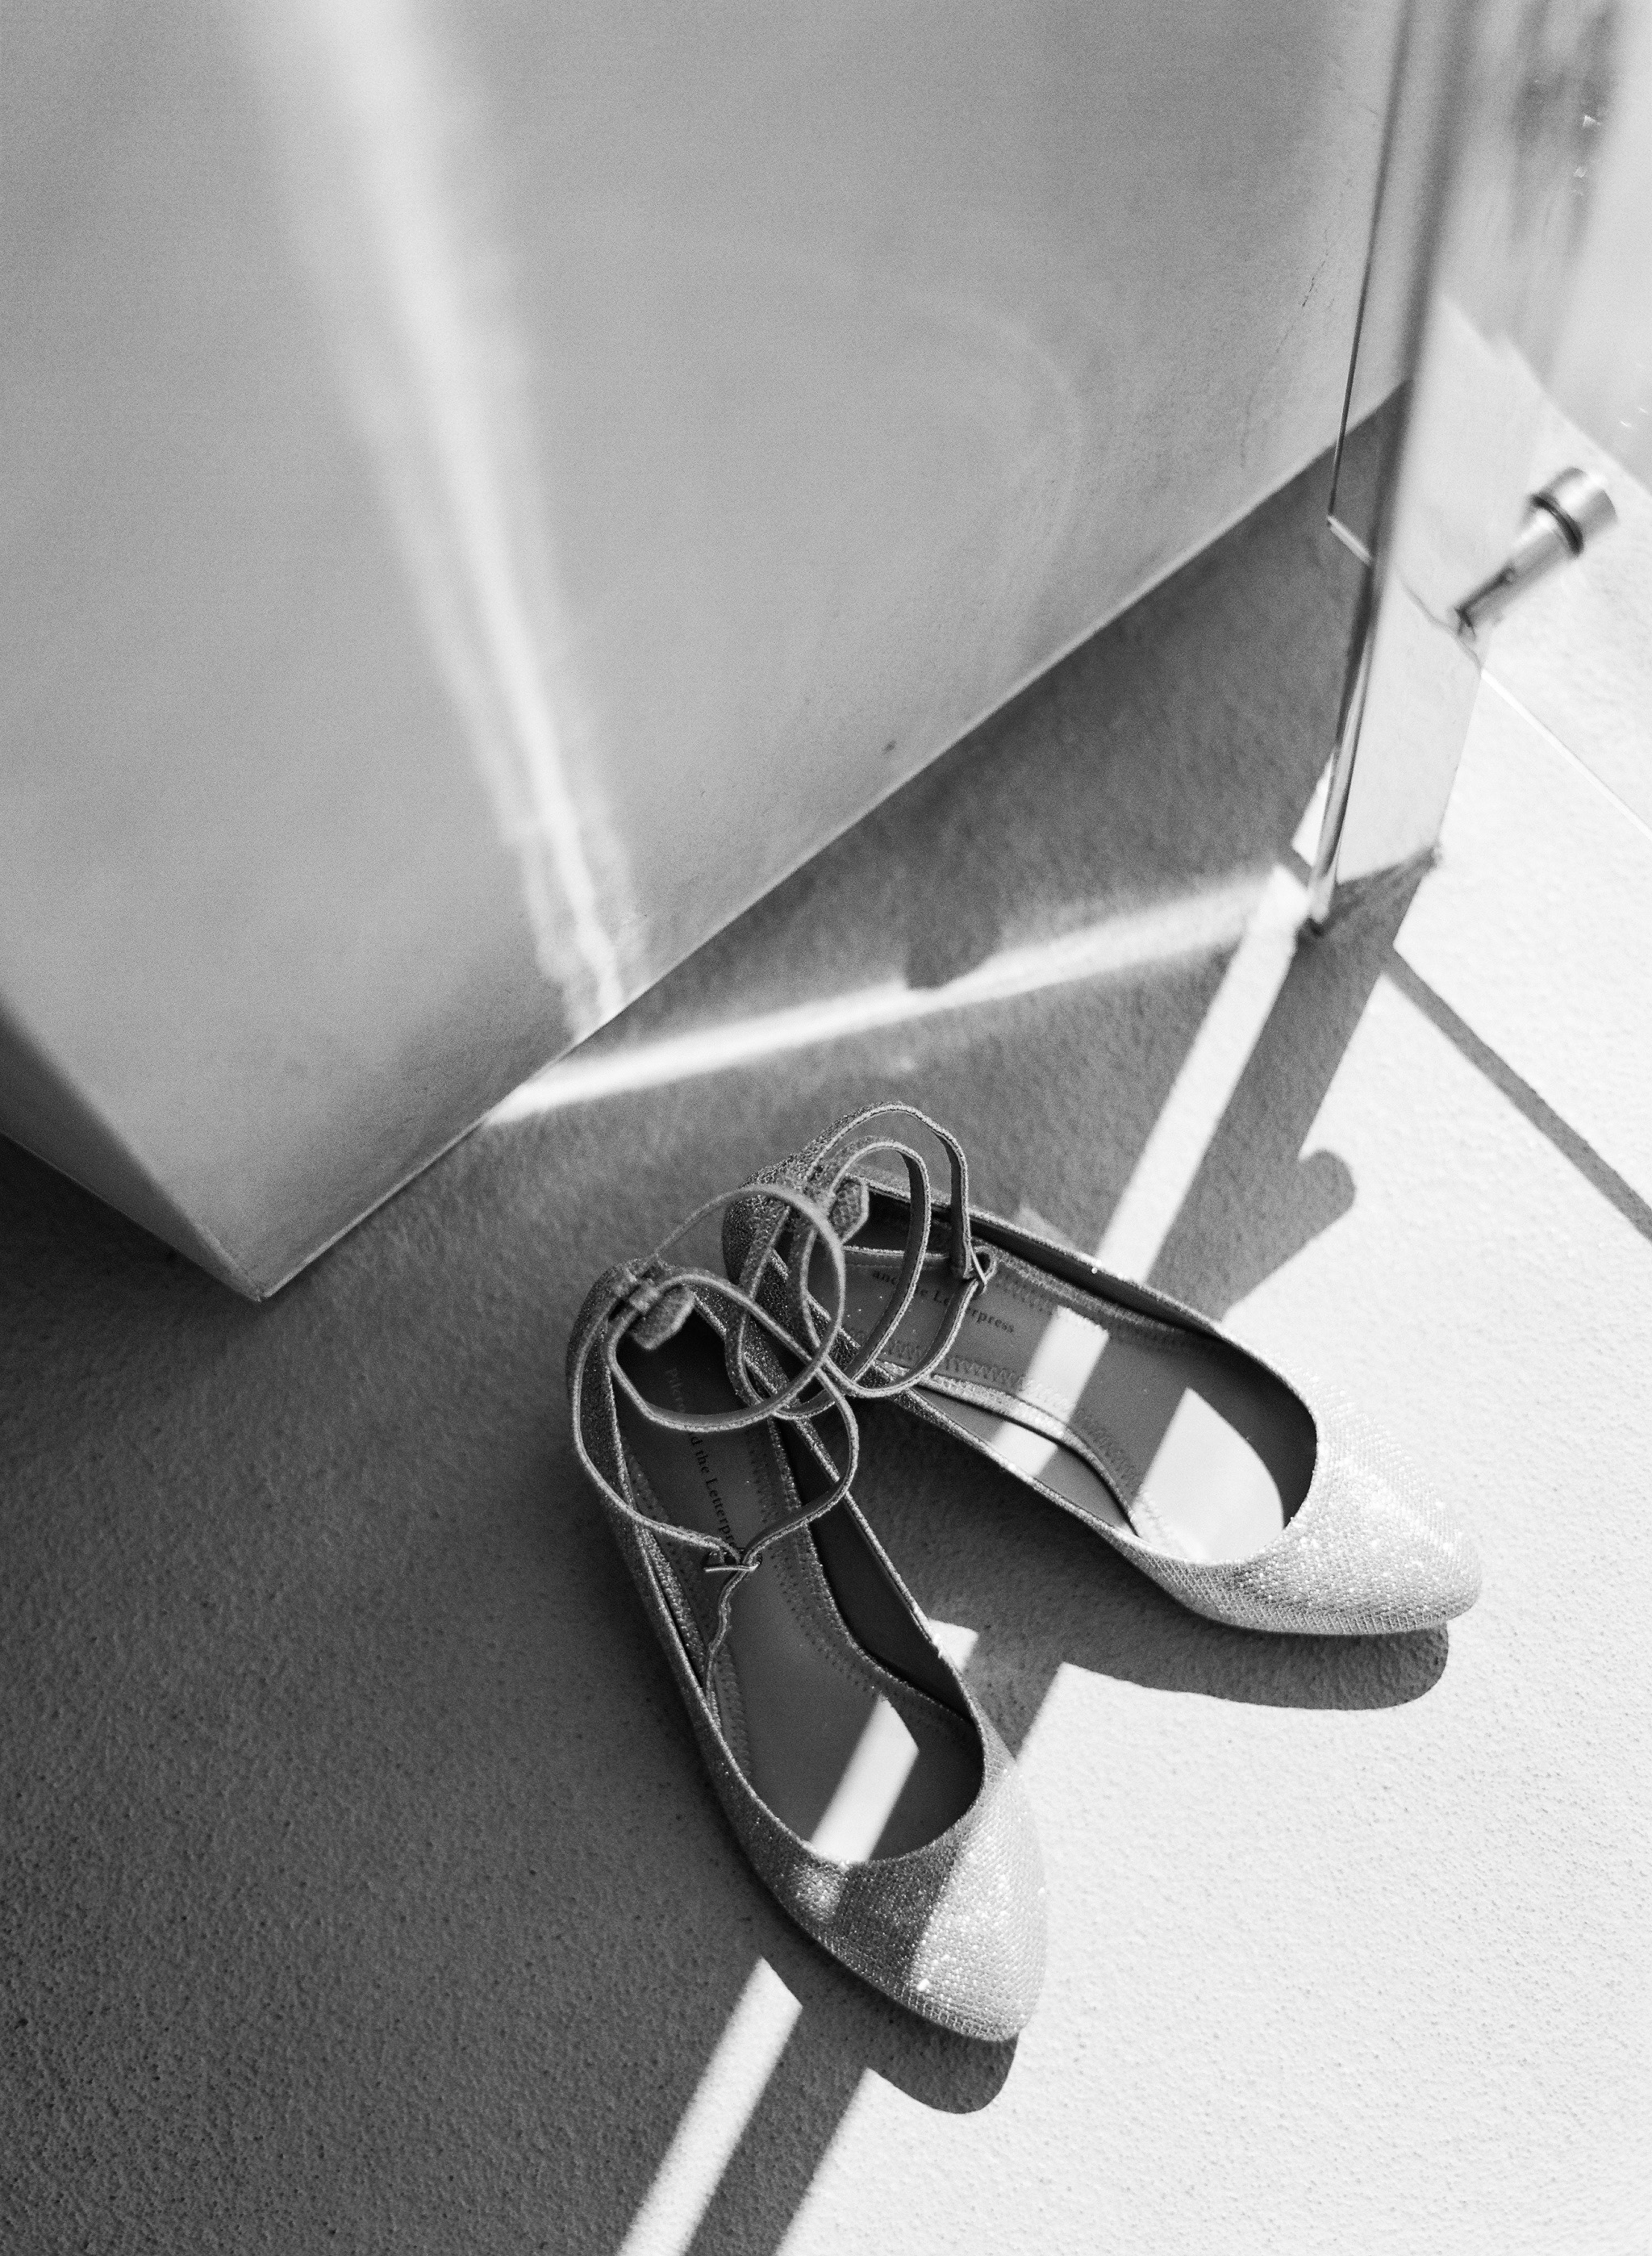 destination wedding photographer shoots orthodox jewish wedding and bride's wedding shoes in black and white film photography